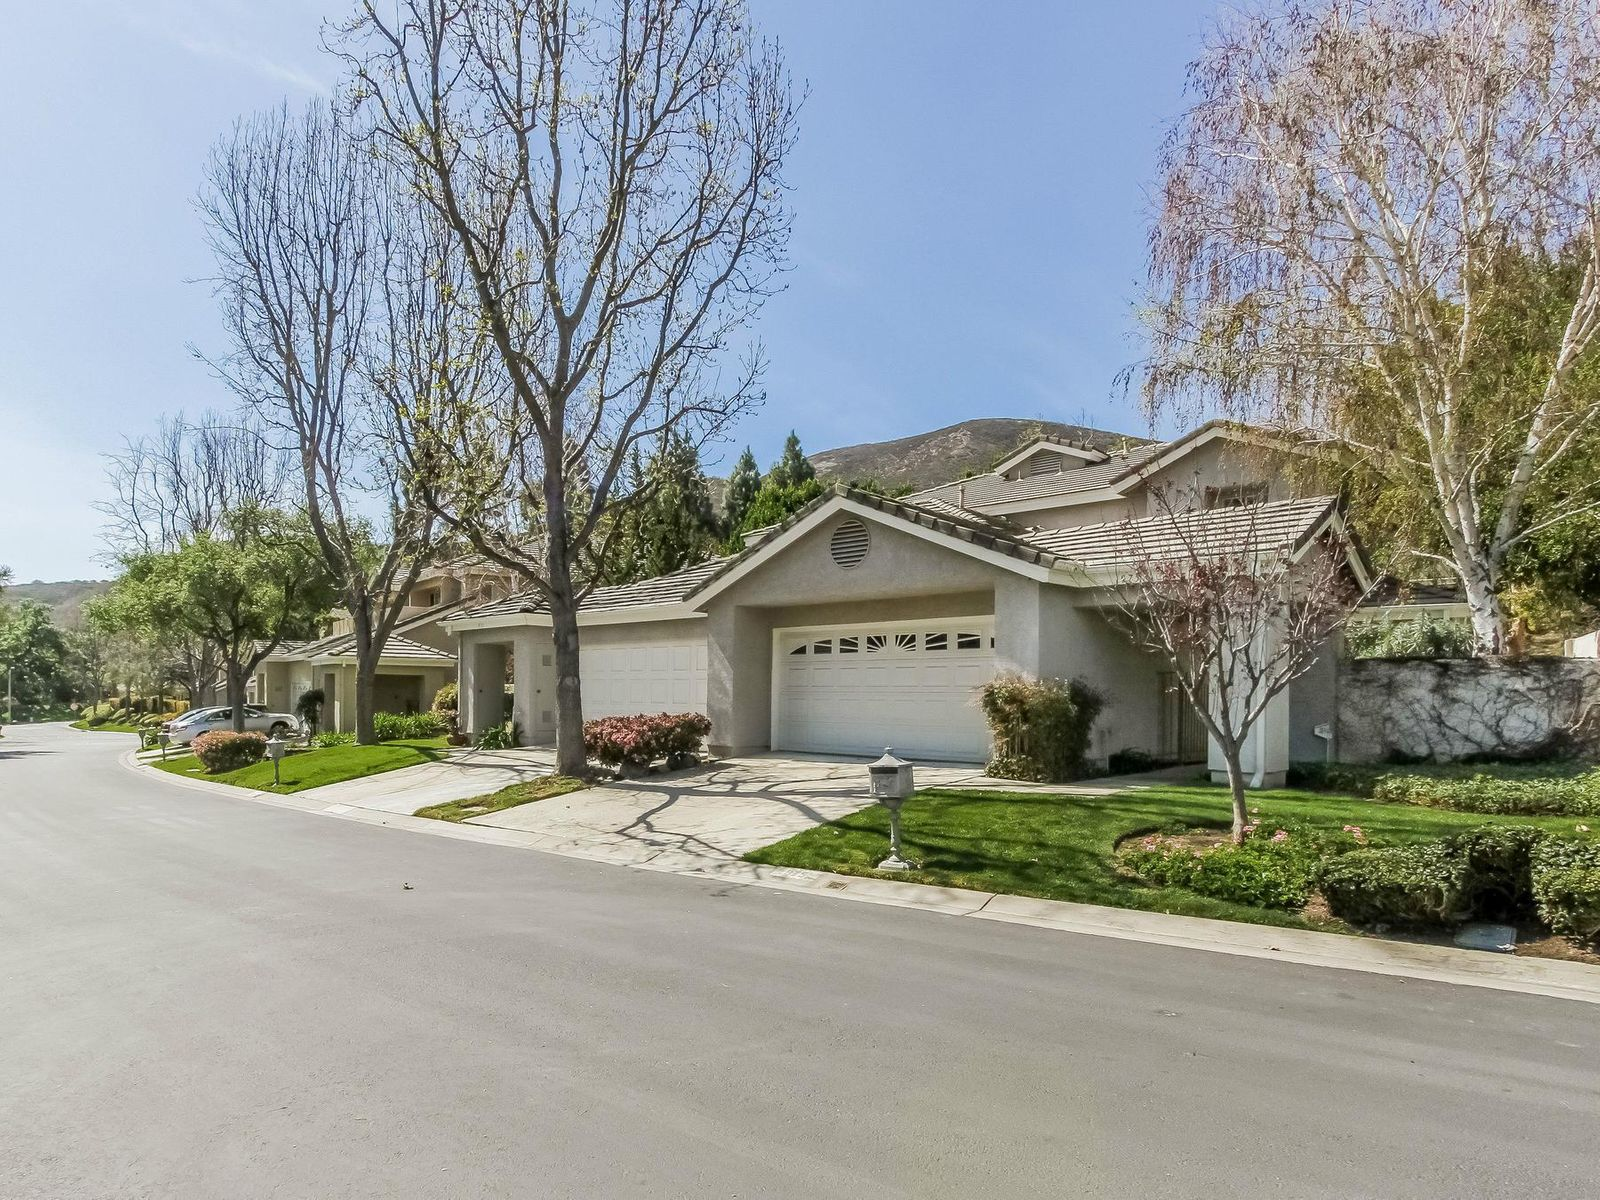 Coveted Braemar Townhome in North Ranch, Westlake Village CA Townhouse - Los Angeles Real Estate